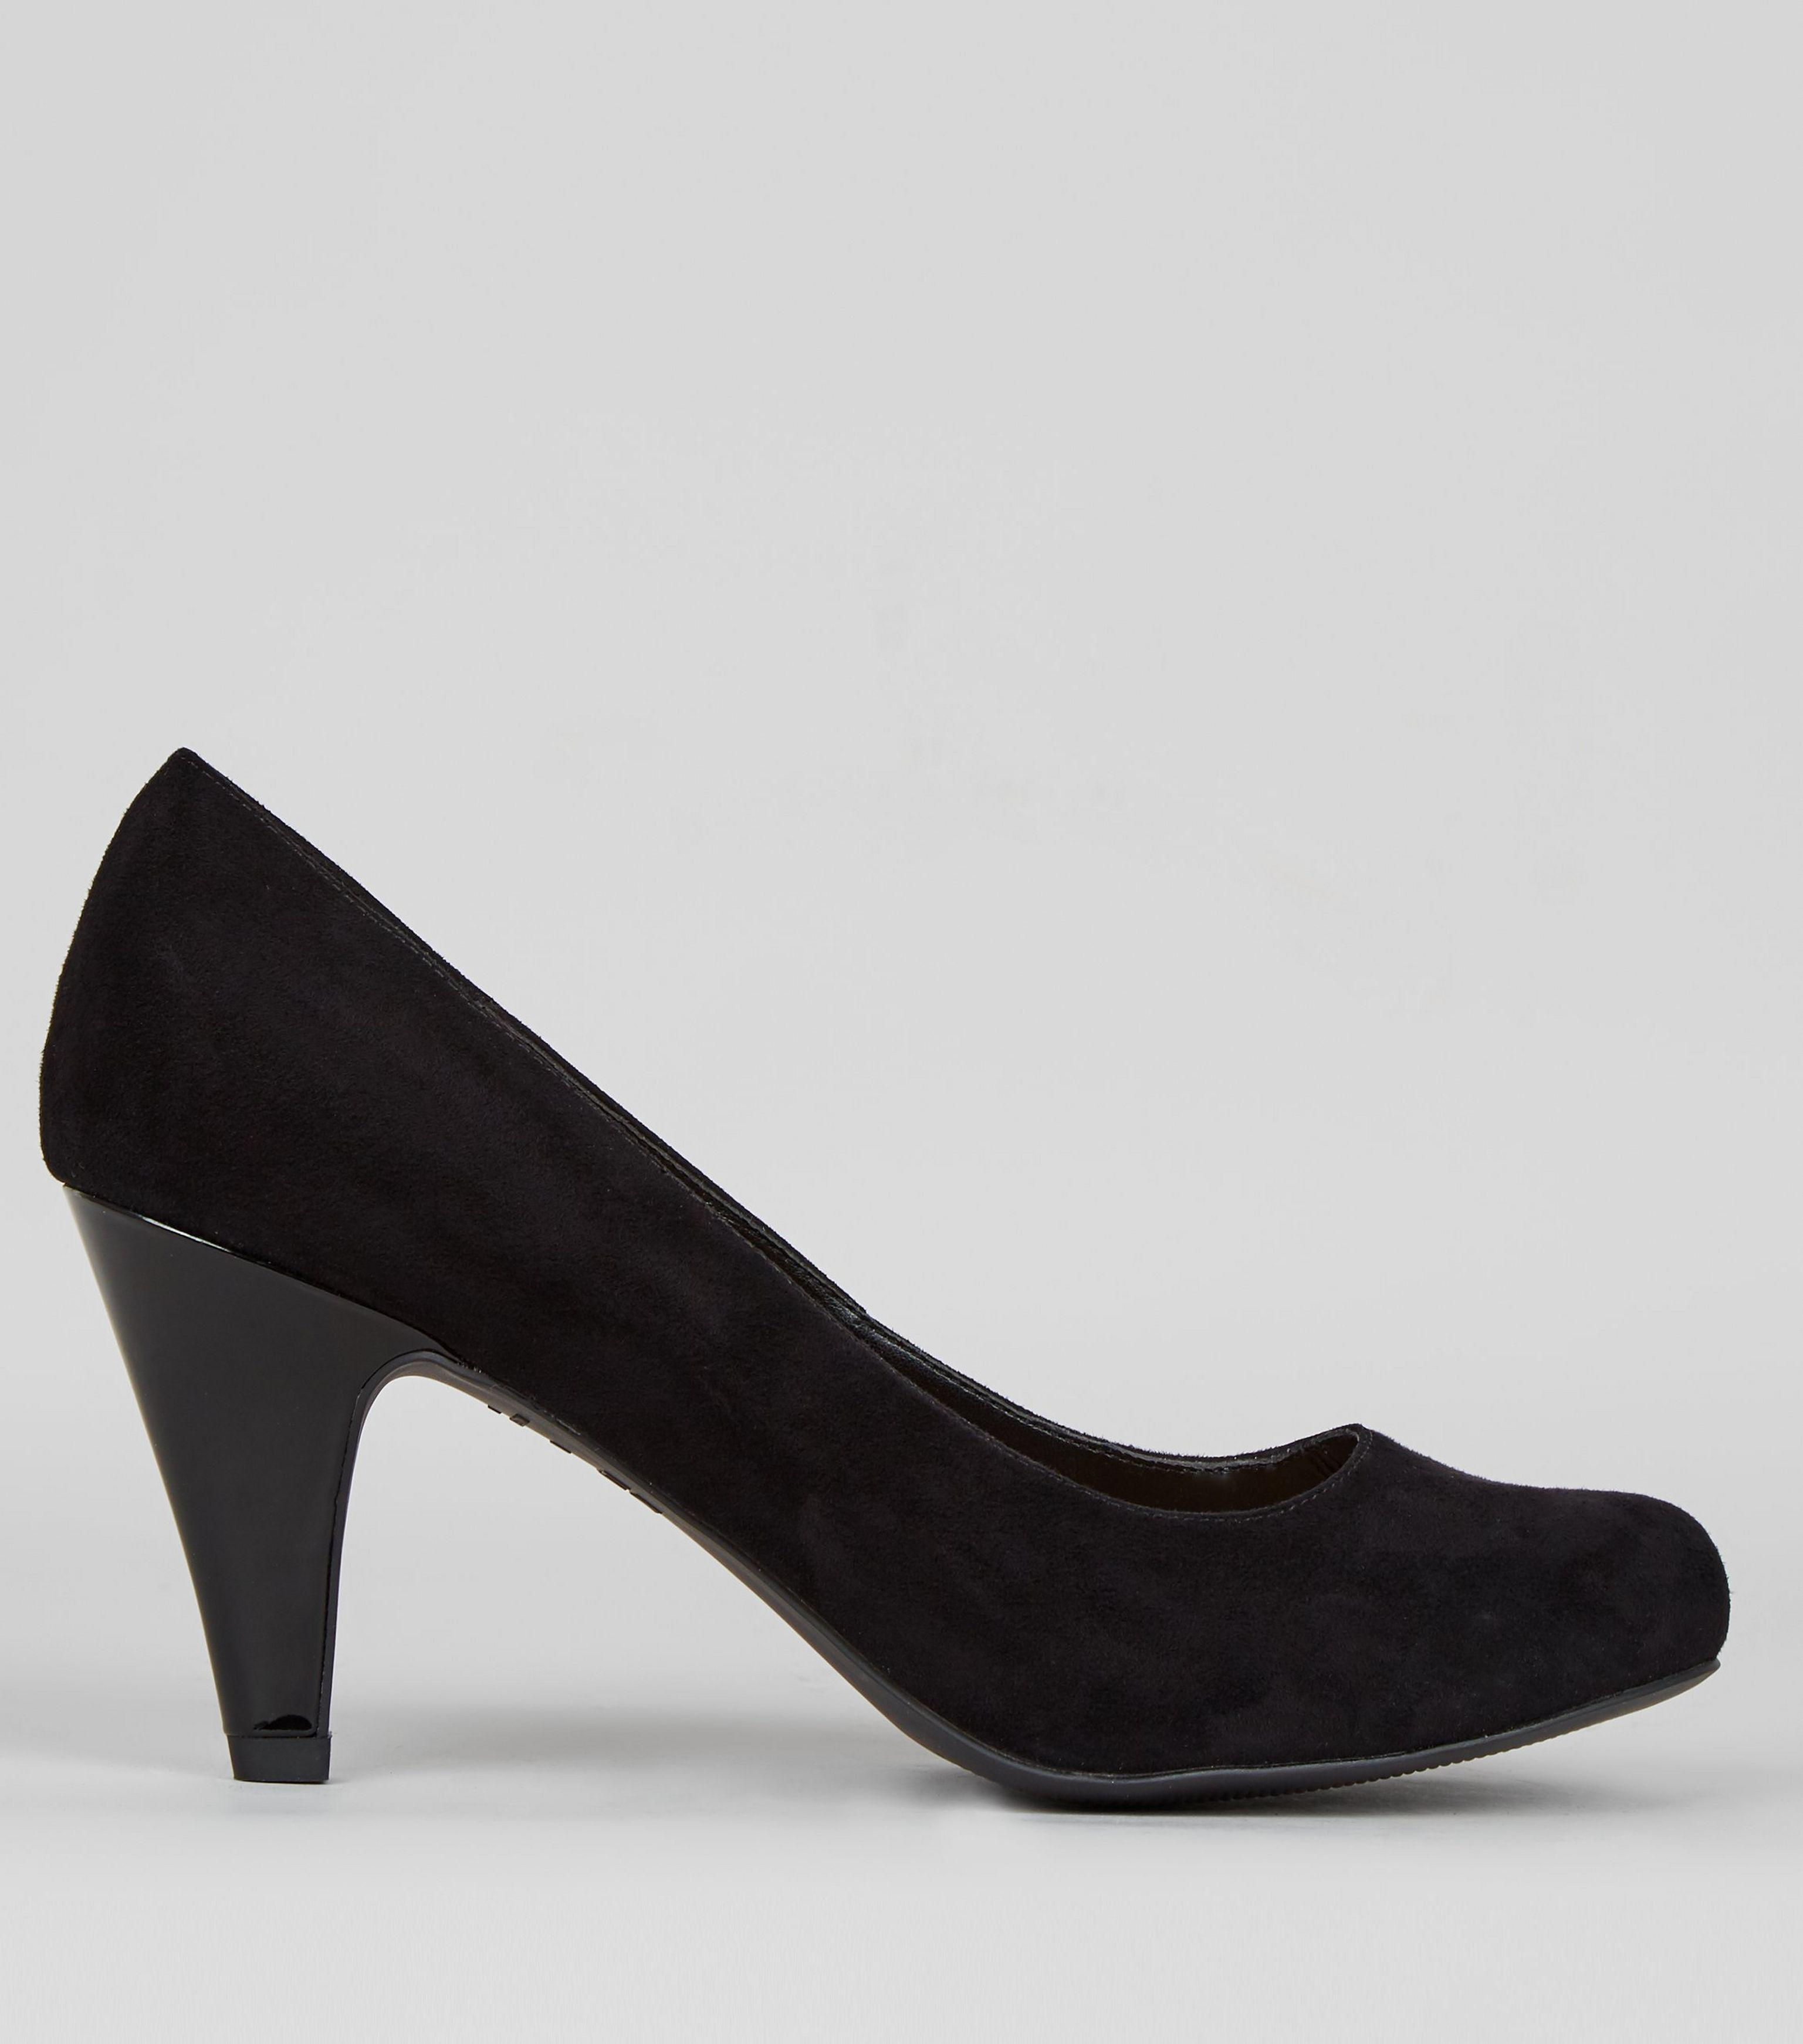 09aa7404d8e Lyst - New Look Extra Wide Fit Black Suedette Court Shoes in Black ...